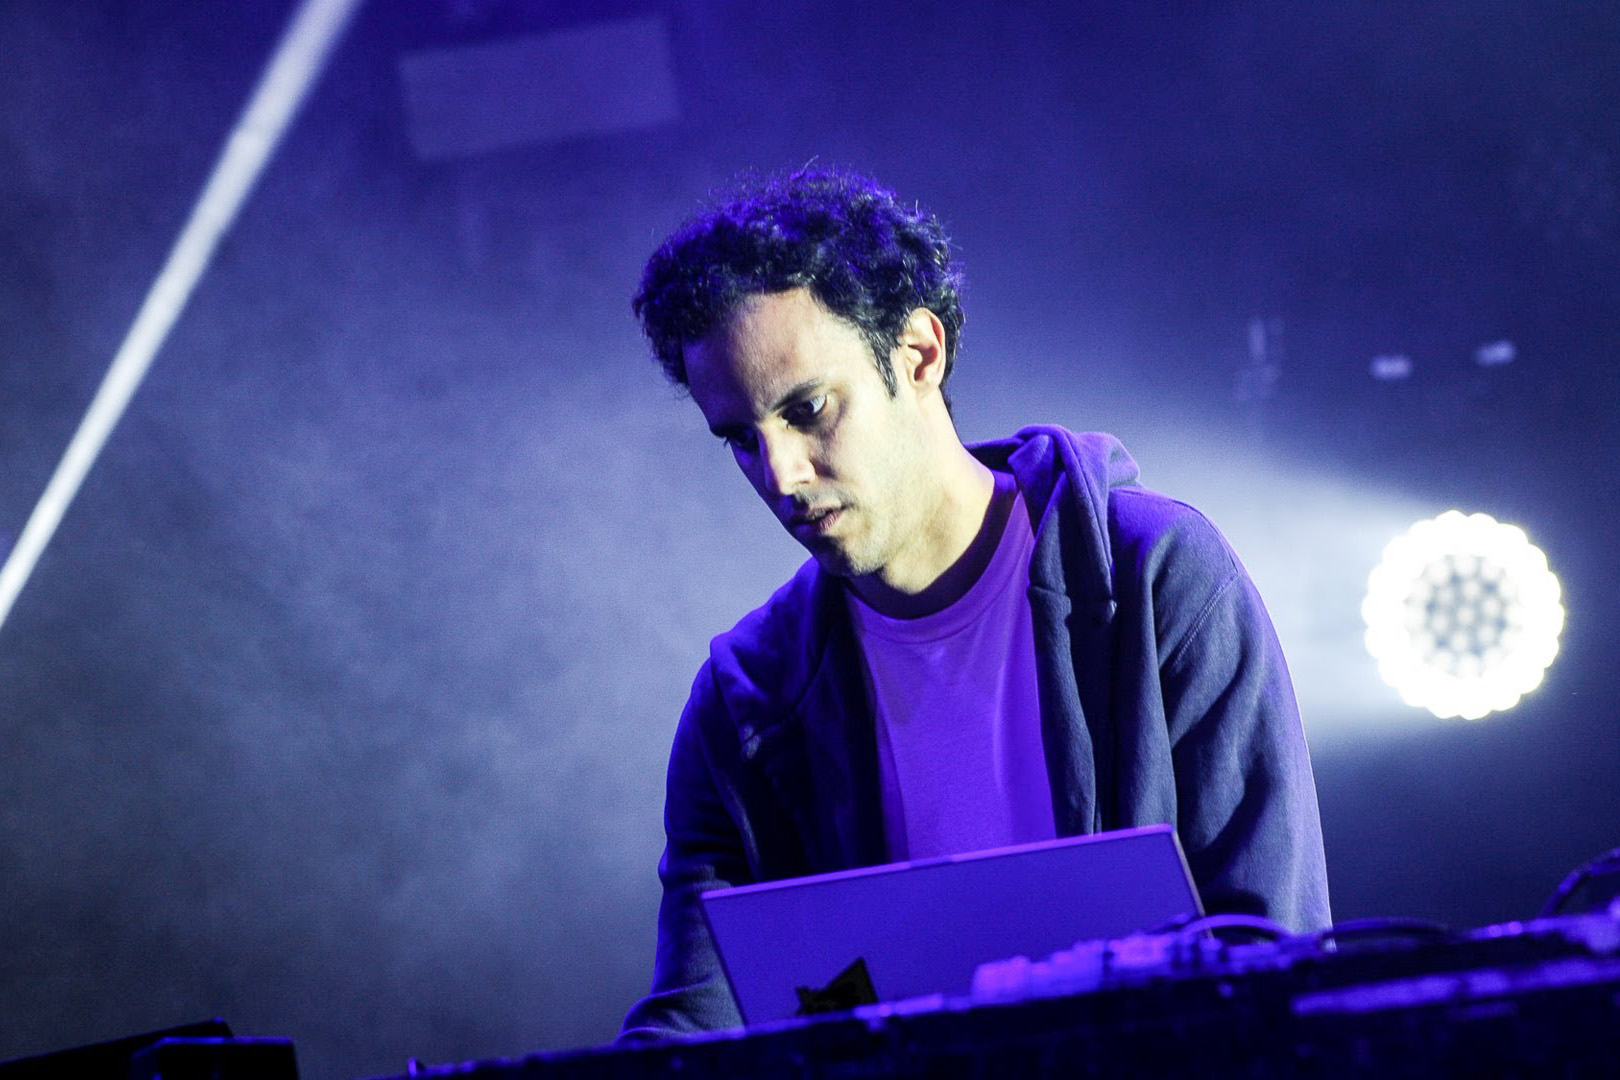 Four Tet shares new song 'Teenage Birdsong'; announces Spotify playlist takeover